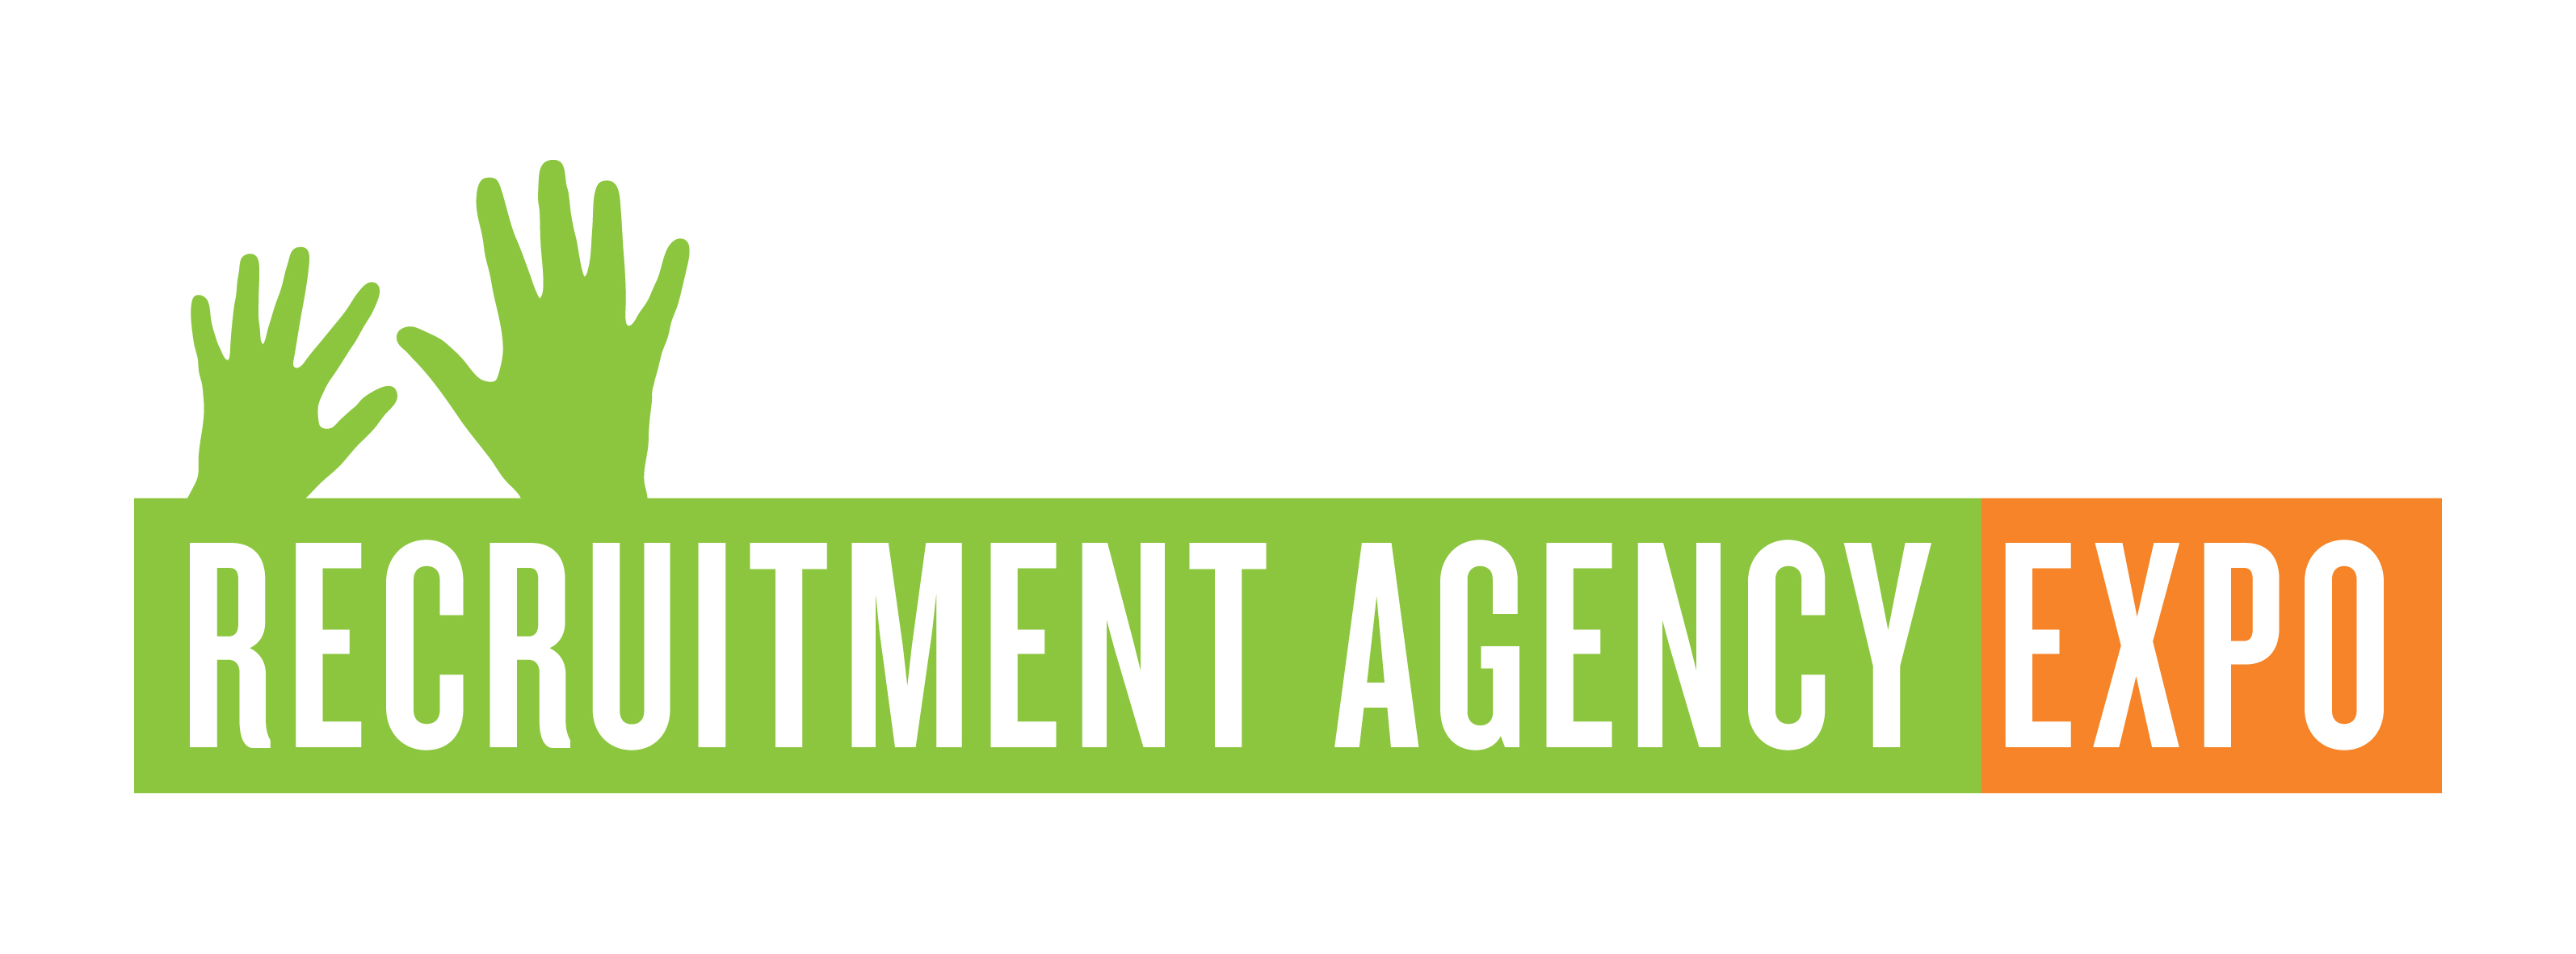 Recruitment logo design for recruitment agency expo by for Design recruitment agencies